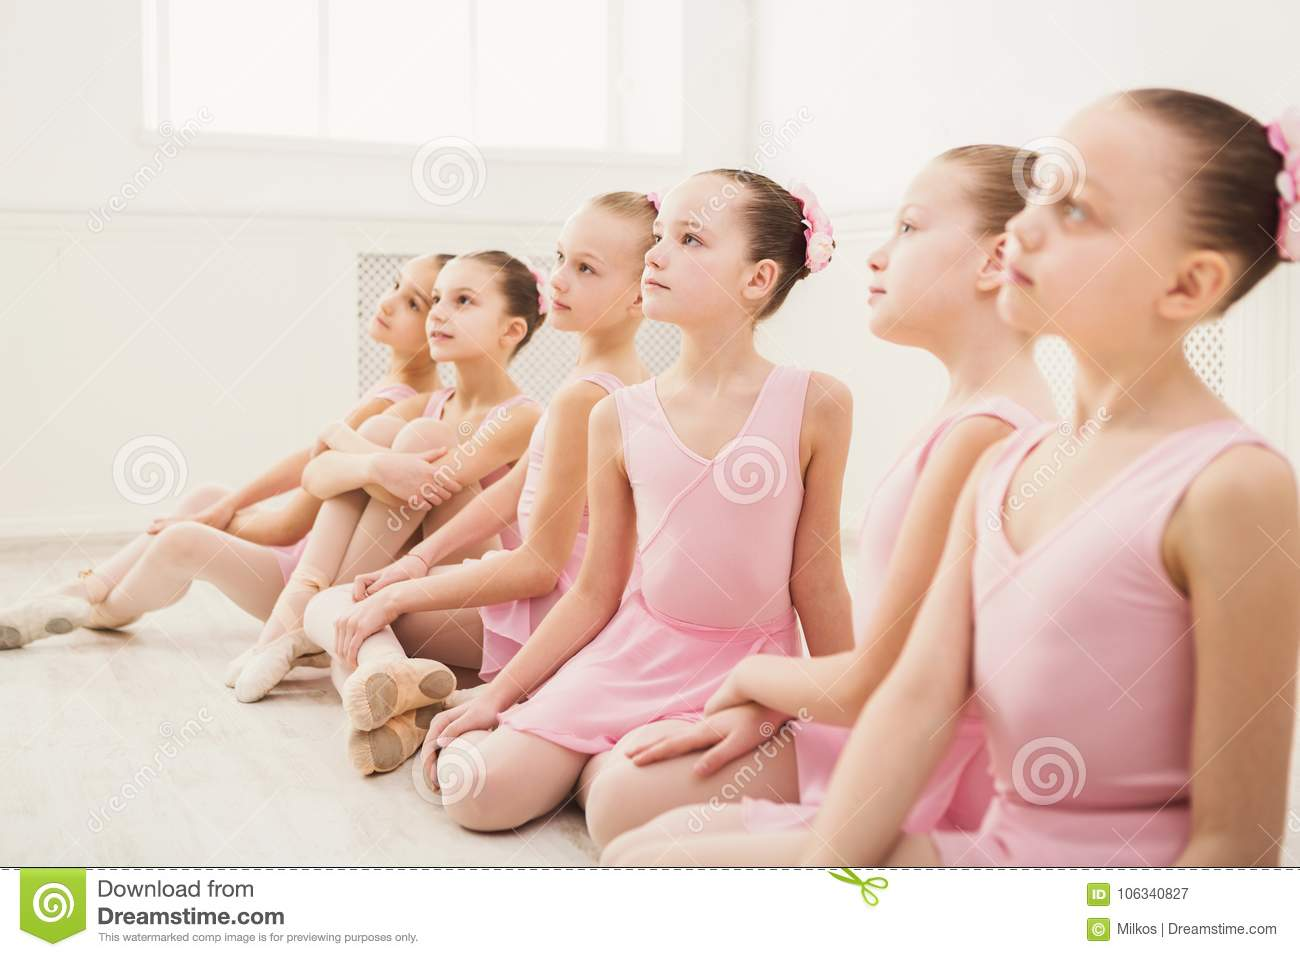 Little Ballerinas In Ballet Studio Stock Image - Image of